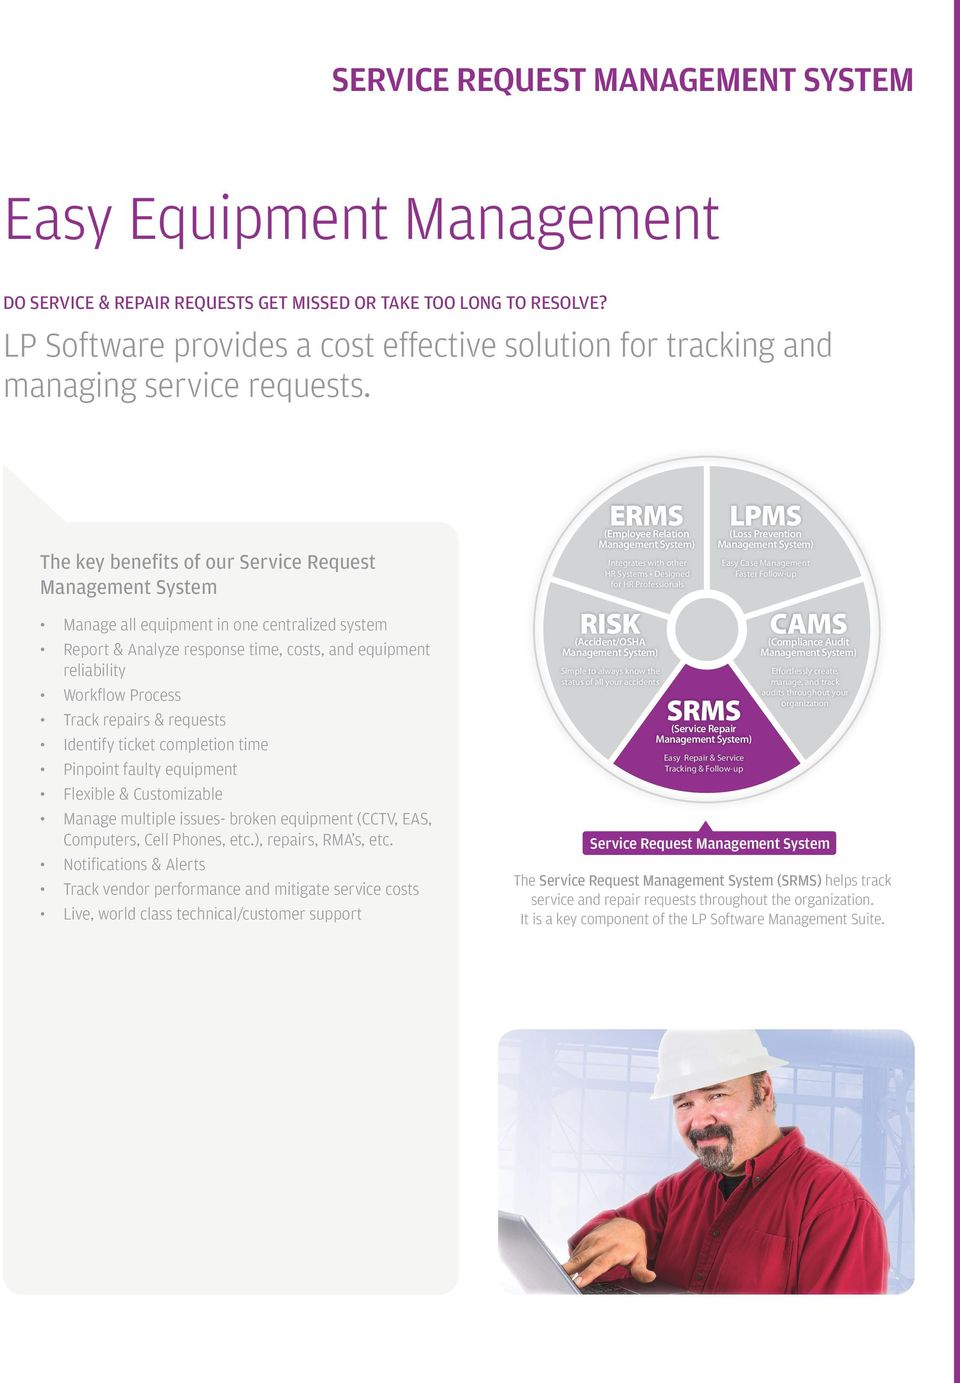 The key benefits of our Service Request Management System Manage all equipment in one centralized system Report & Analyze response time, costs, and equipment reliability Workflow Process Track